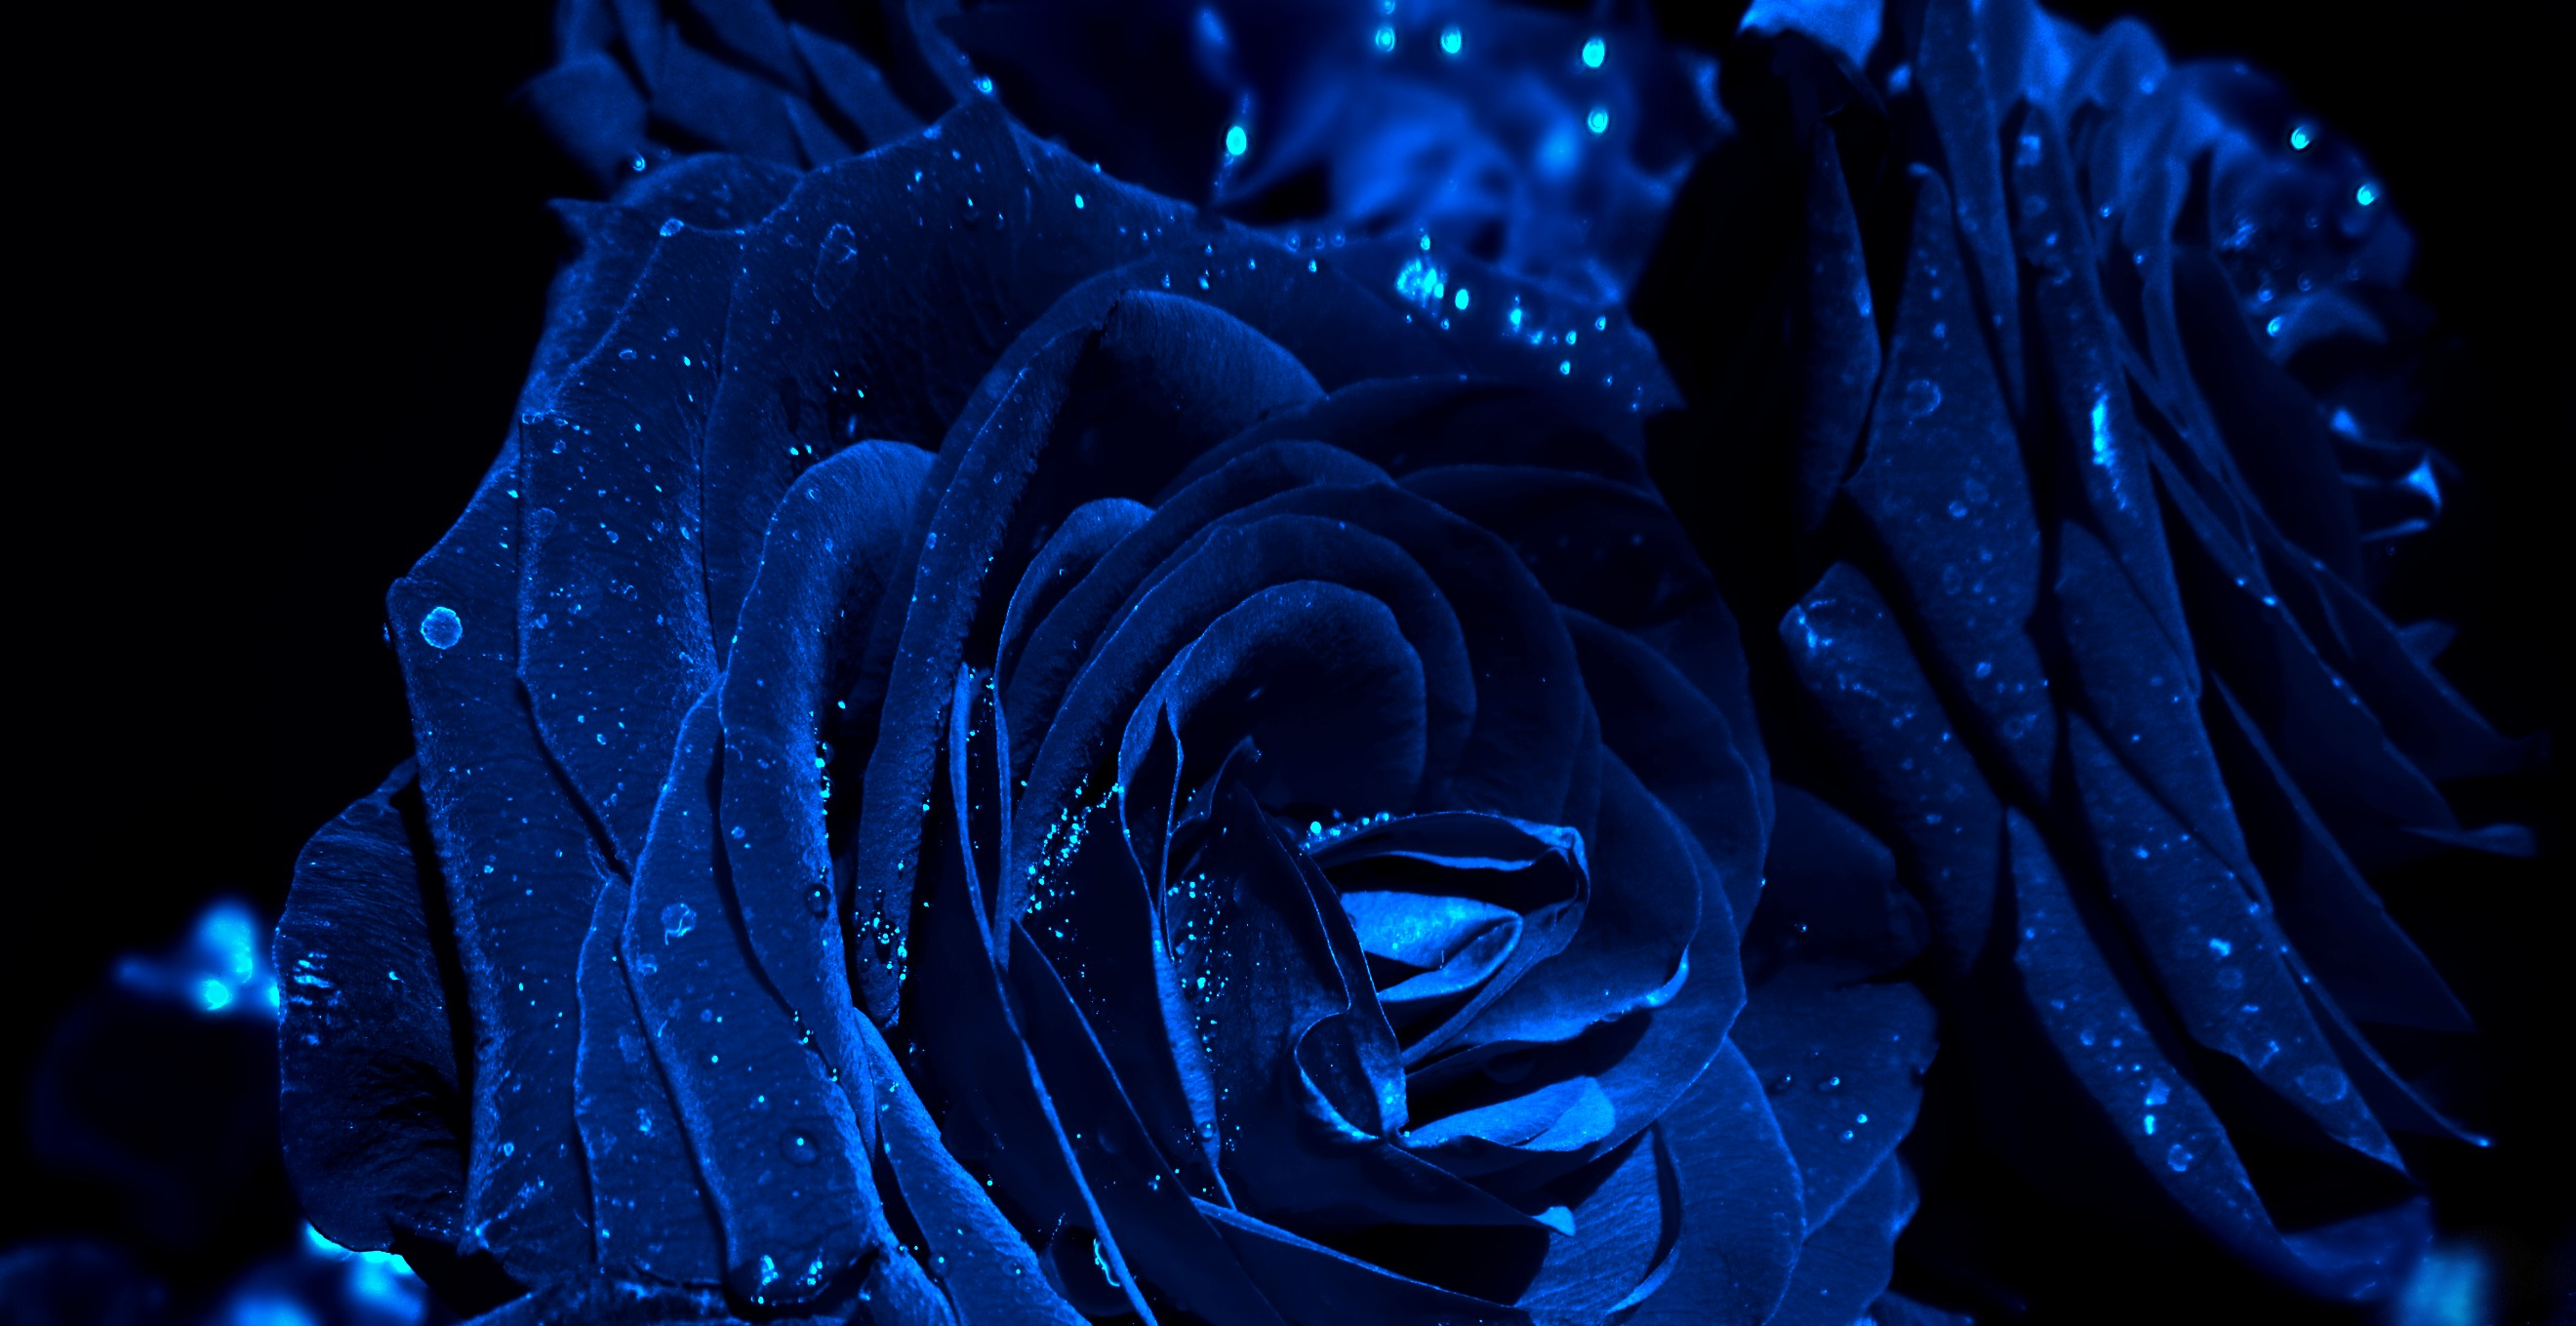 Blue roses by Marianna9 on DeviantArt